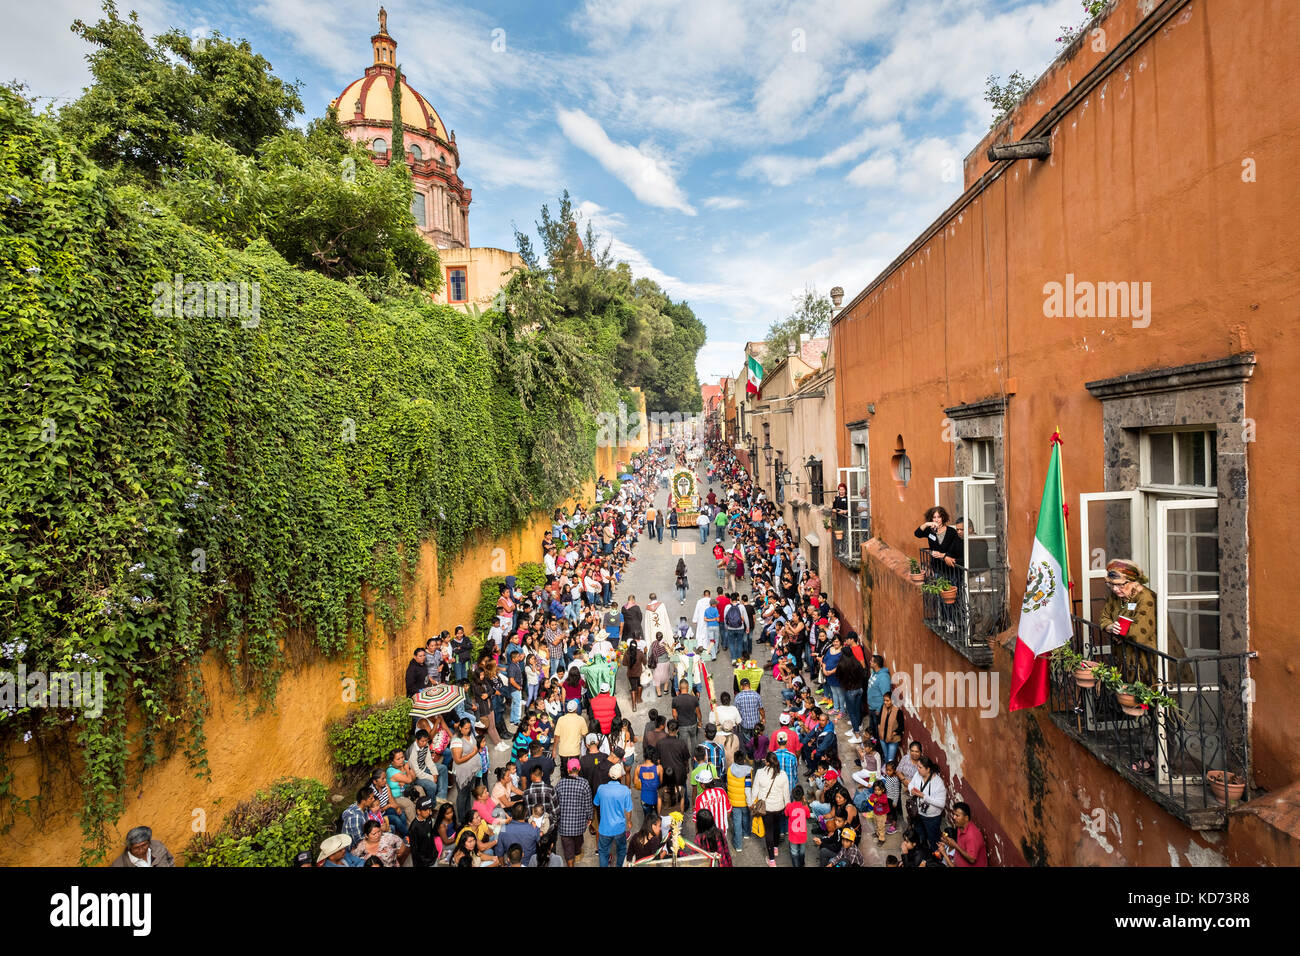 A religious procession carries a statue of St Michael through the historic district during the week long fiesta - Stock Image